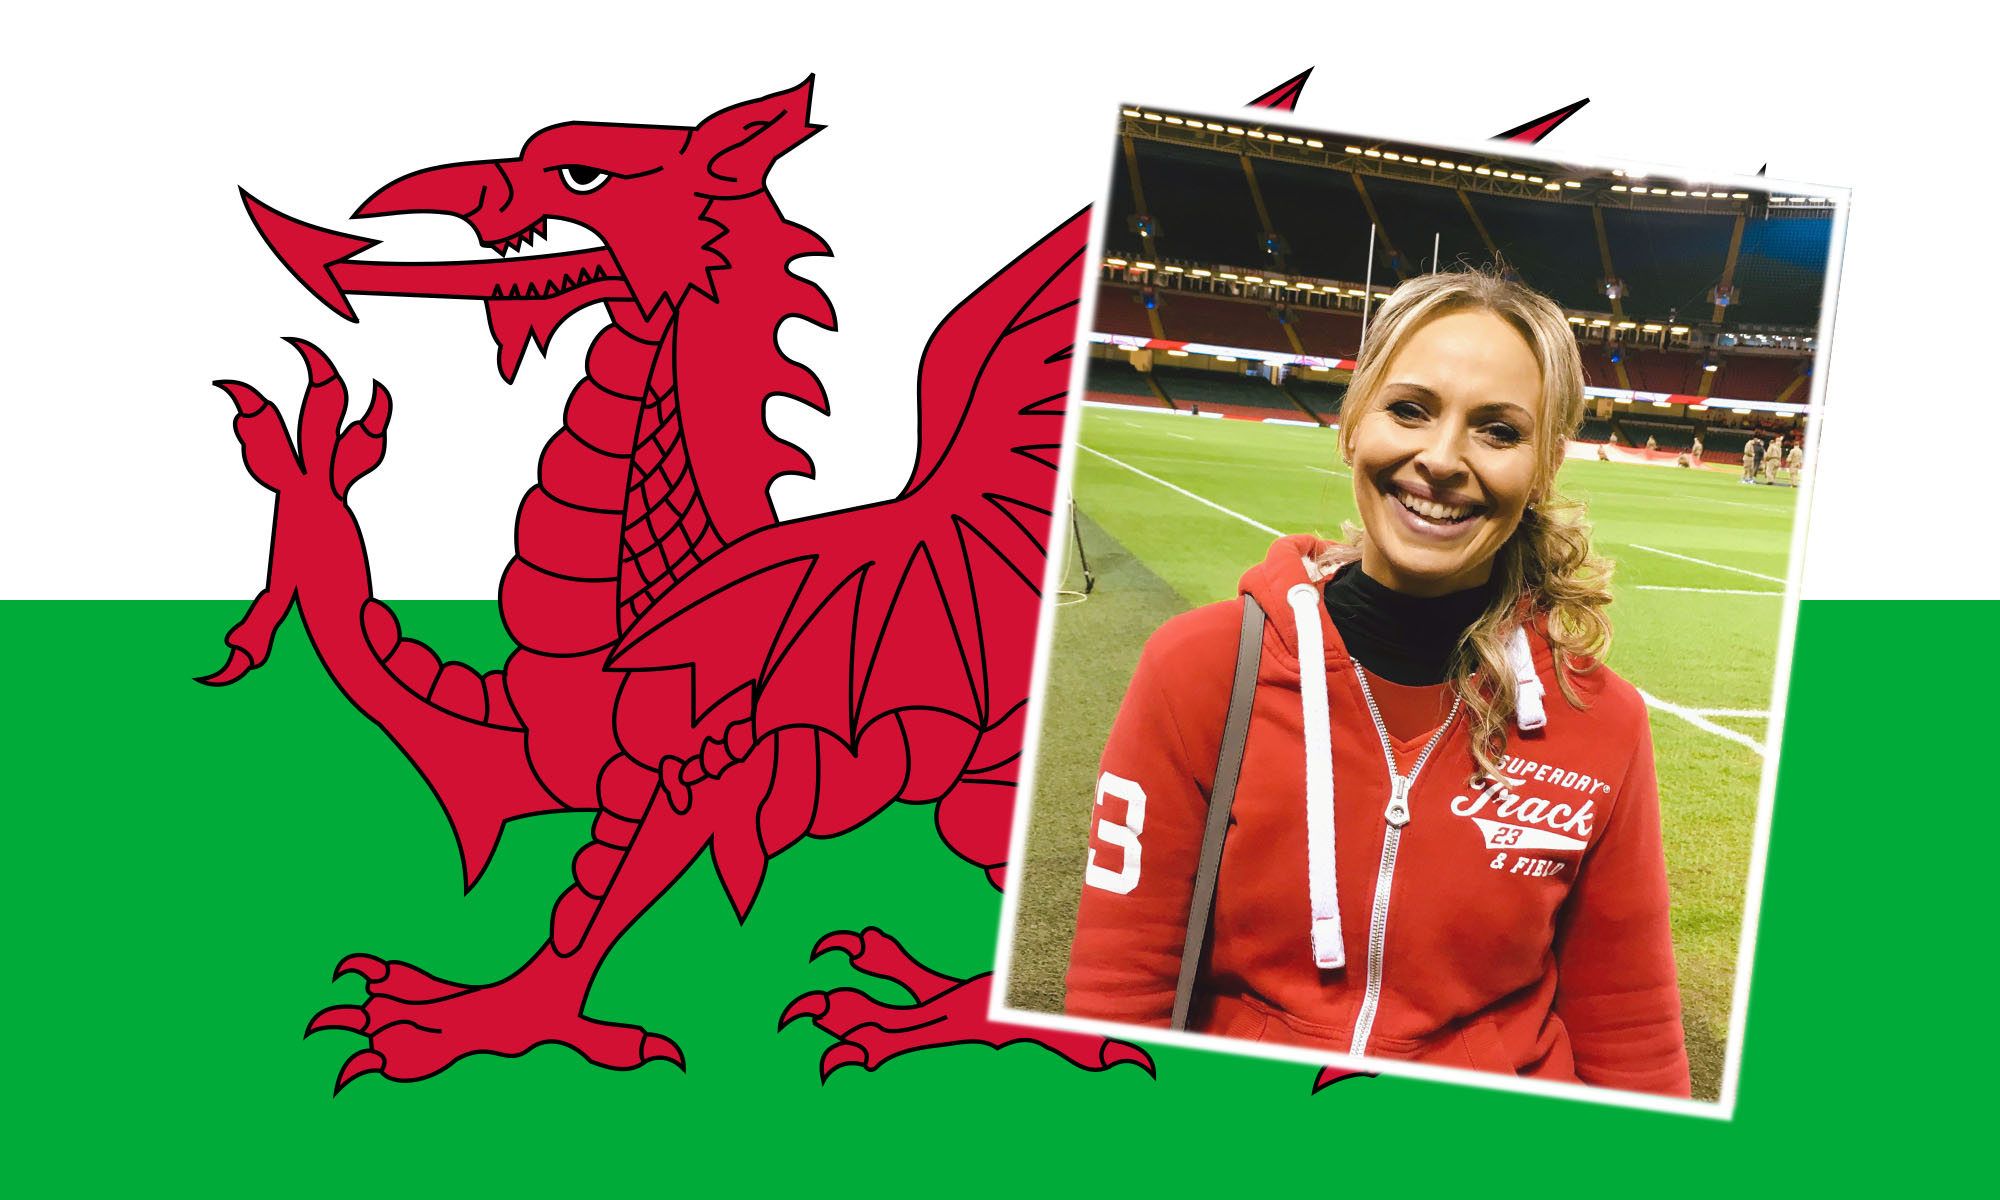 Inset: Joanne Haworth from Milford Haven is 'excited and nervous' to be at the game today.